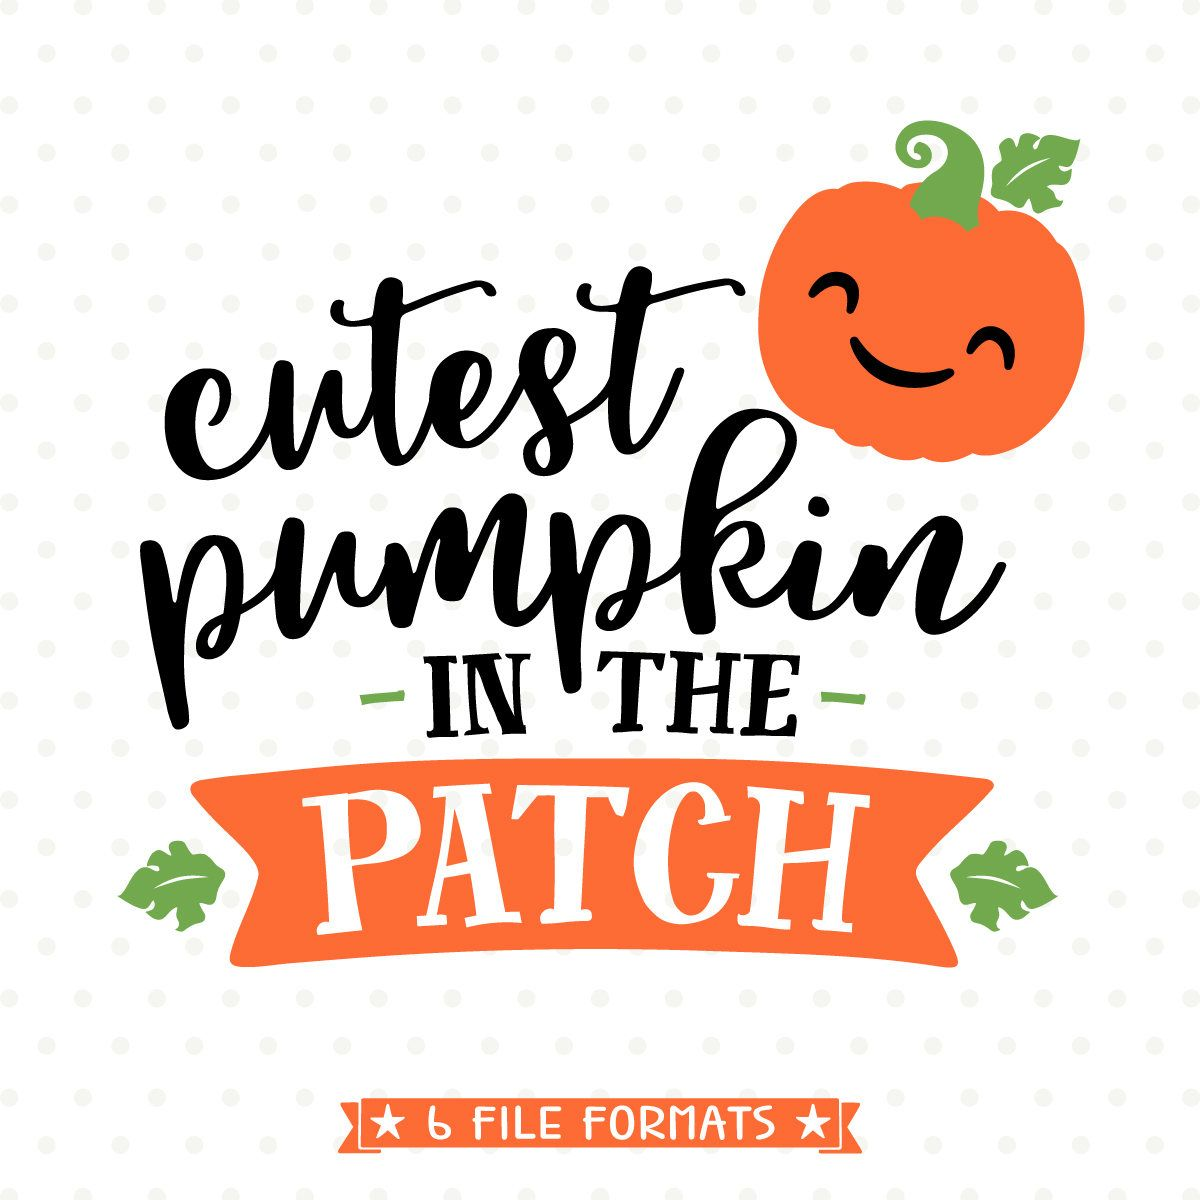 Pumpkin Svg Halloween Svg Cutest Pumpkin In The Patch Svg File Kids Fall Shirt Iron On Transfer Shirt Design Halloween Shirt Svg Design Cute Pumpkin Fall Kids Cricut